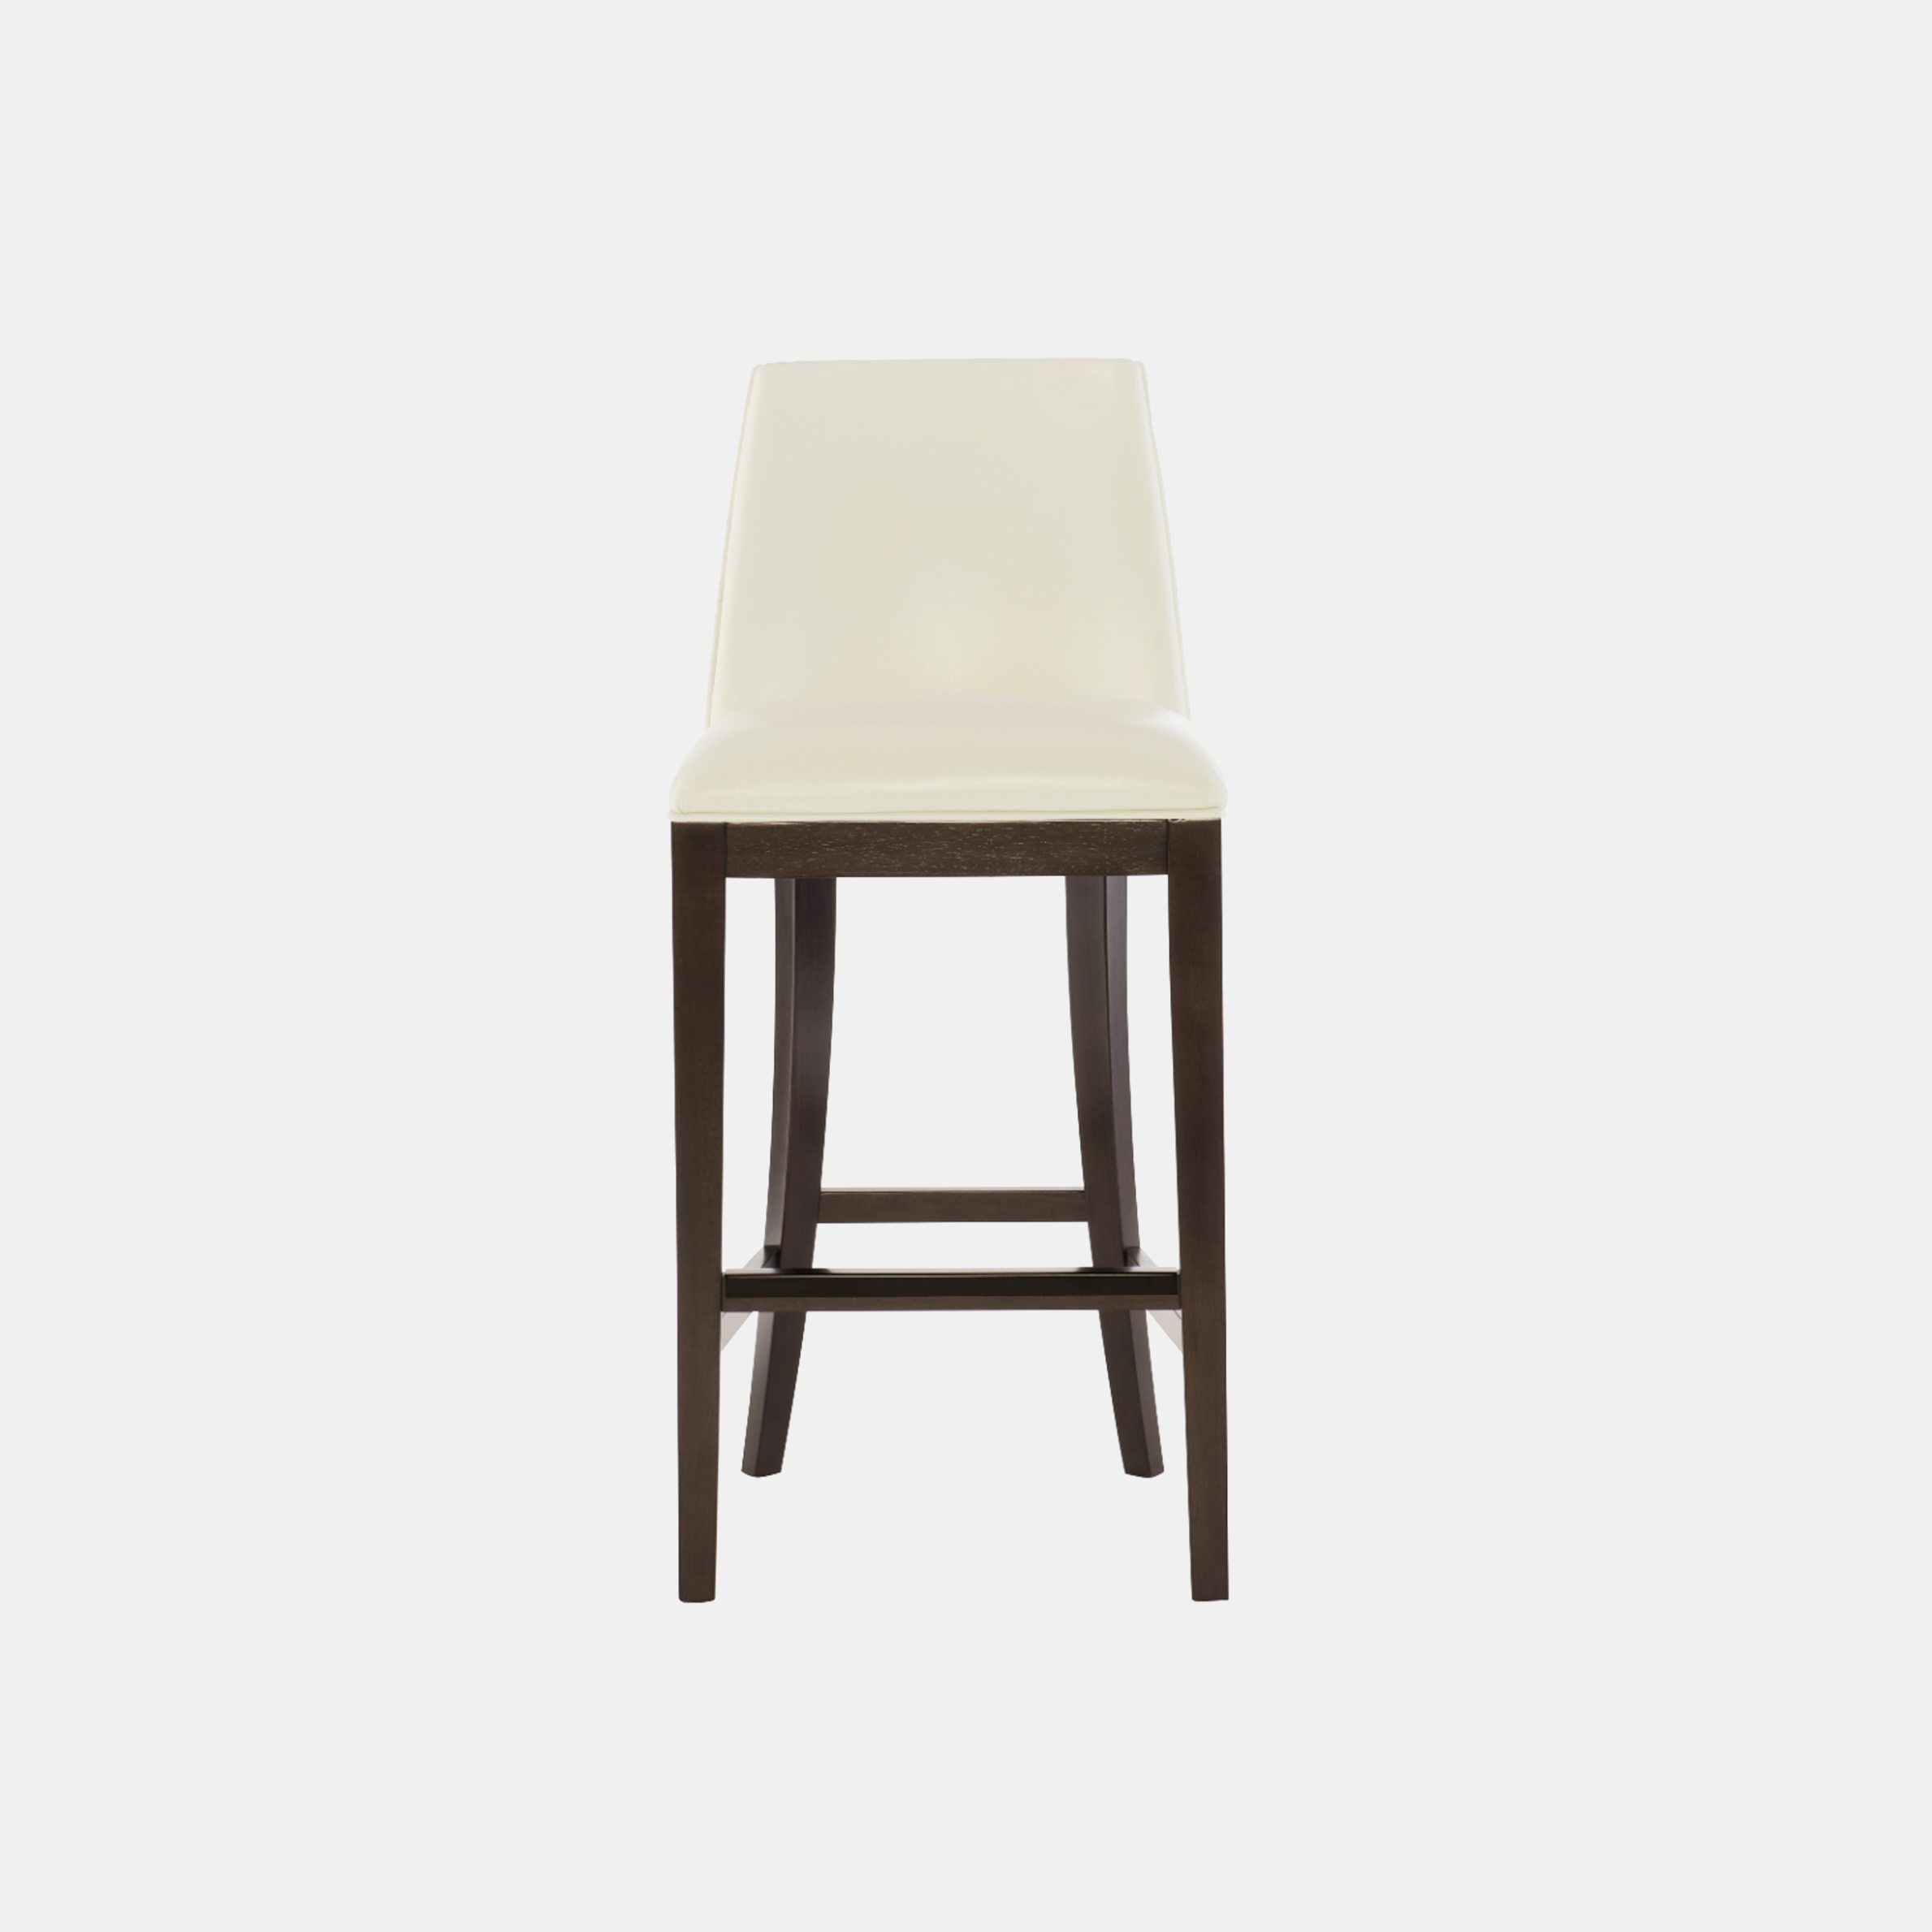 "Bailey Bar Stool  19""w x 22.25""d x 42.5""h Available in fabric and leather. Wood finish available in cocoa (shown) or smoke. Also available as counter stool. SKU358BHT"